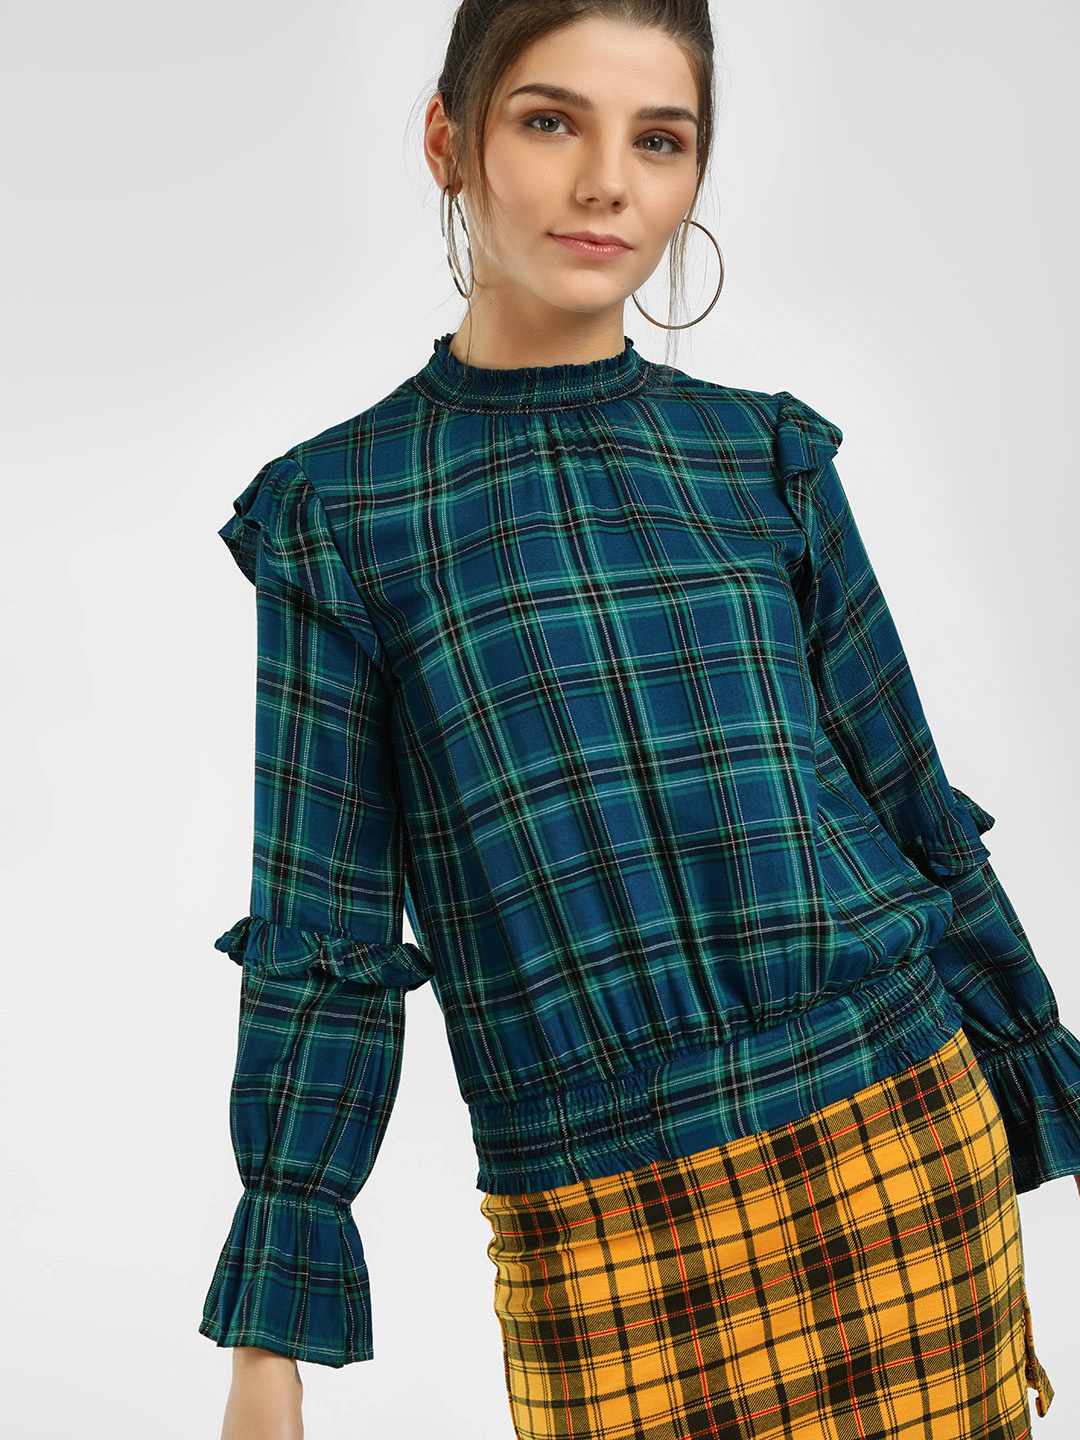 HEY Teal Yarn Dyed Check Blouse 1